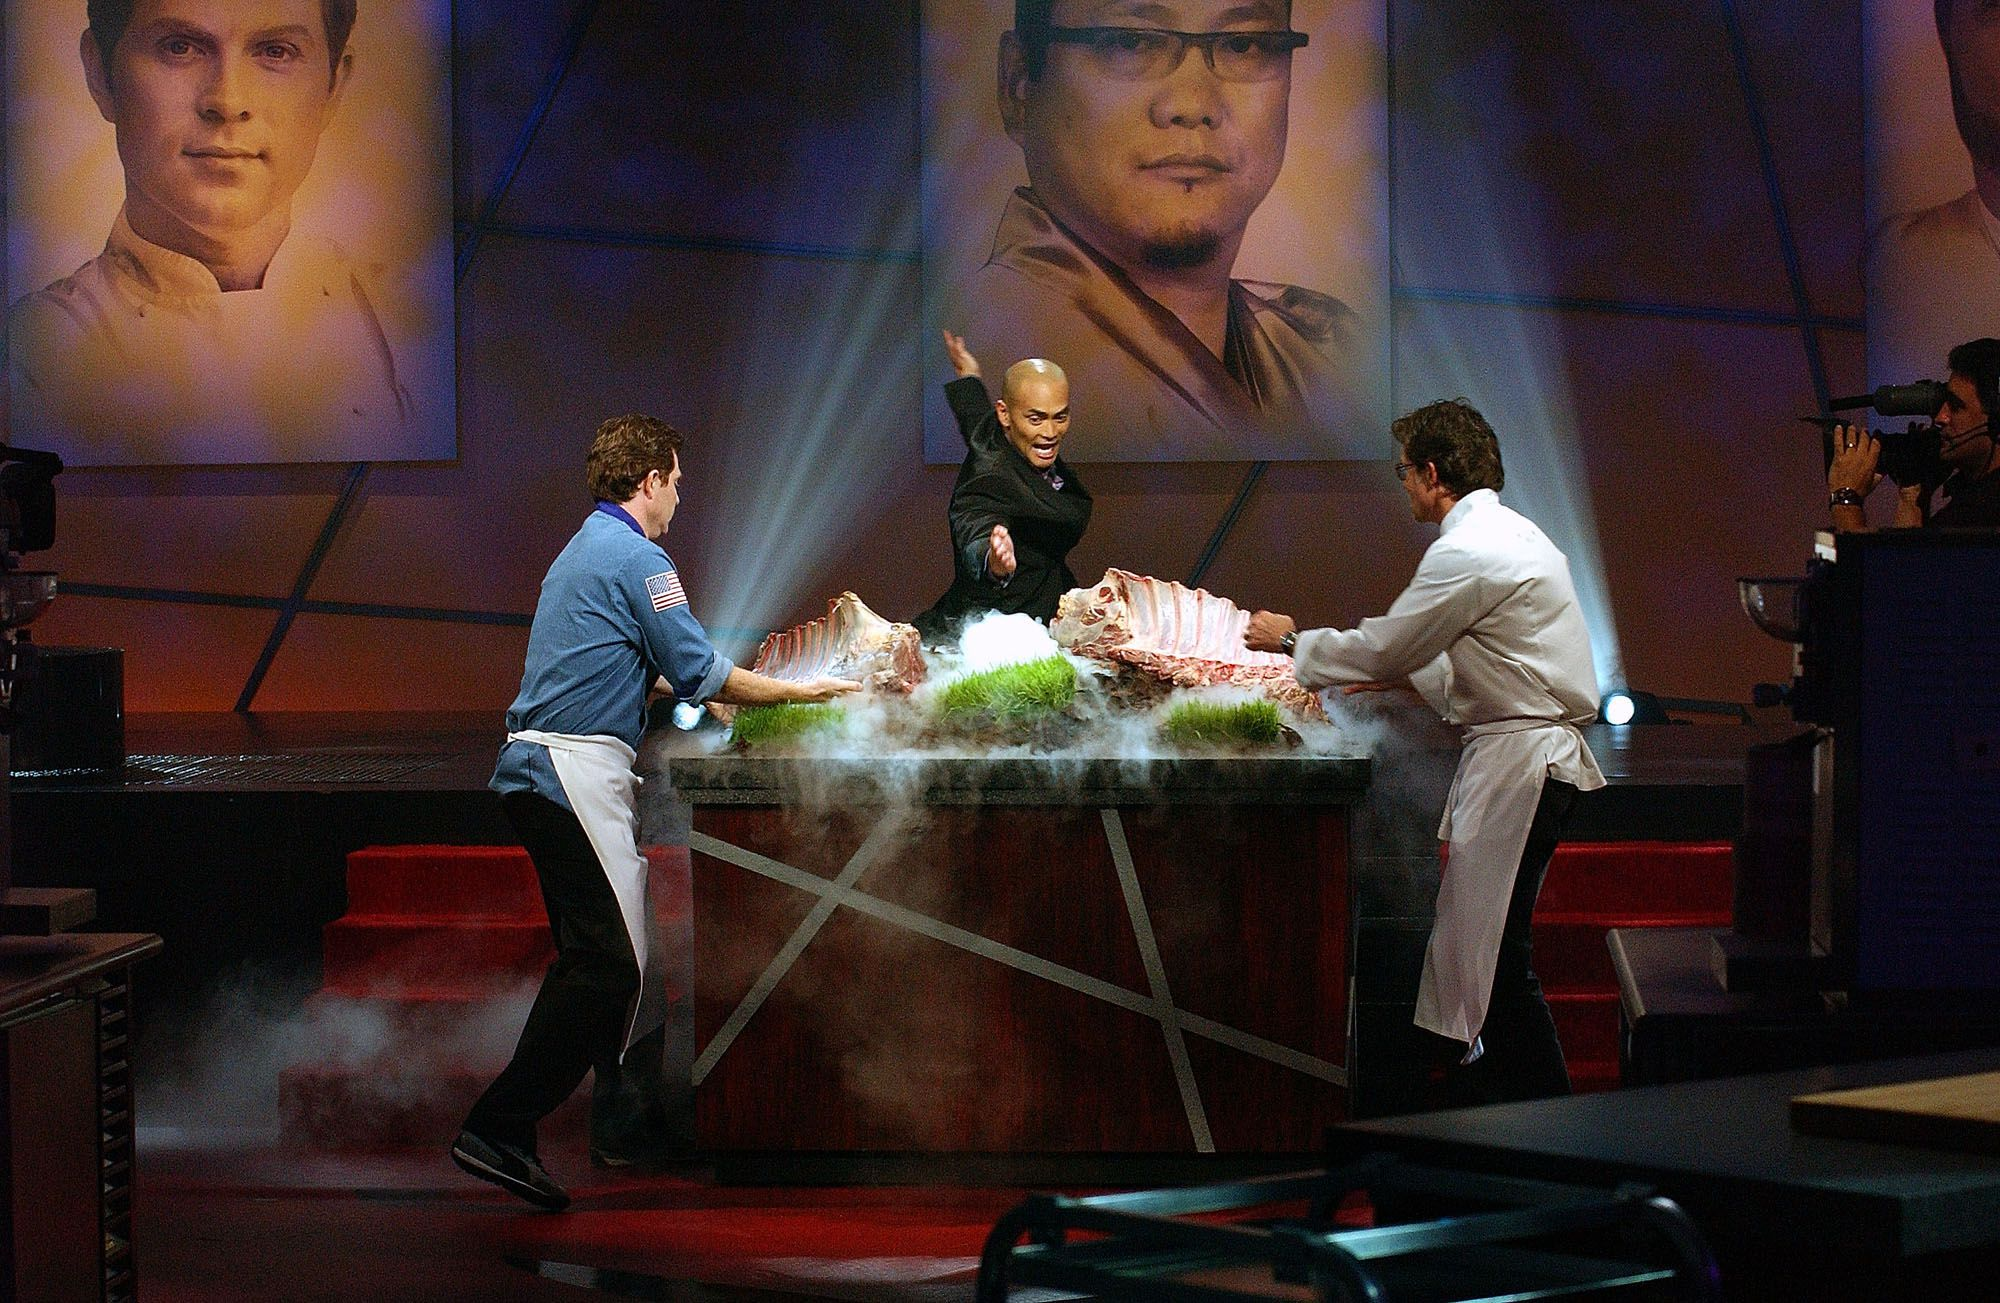 How the Food Network became less about food and more about